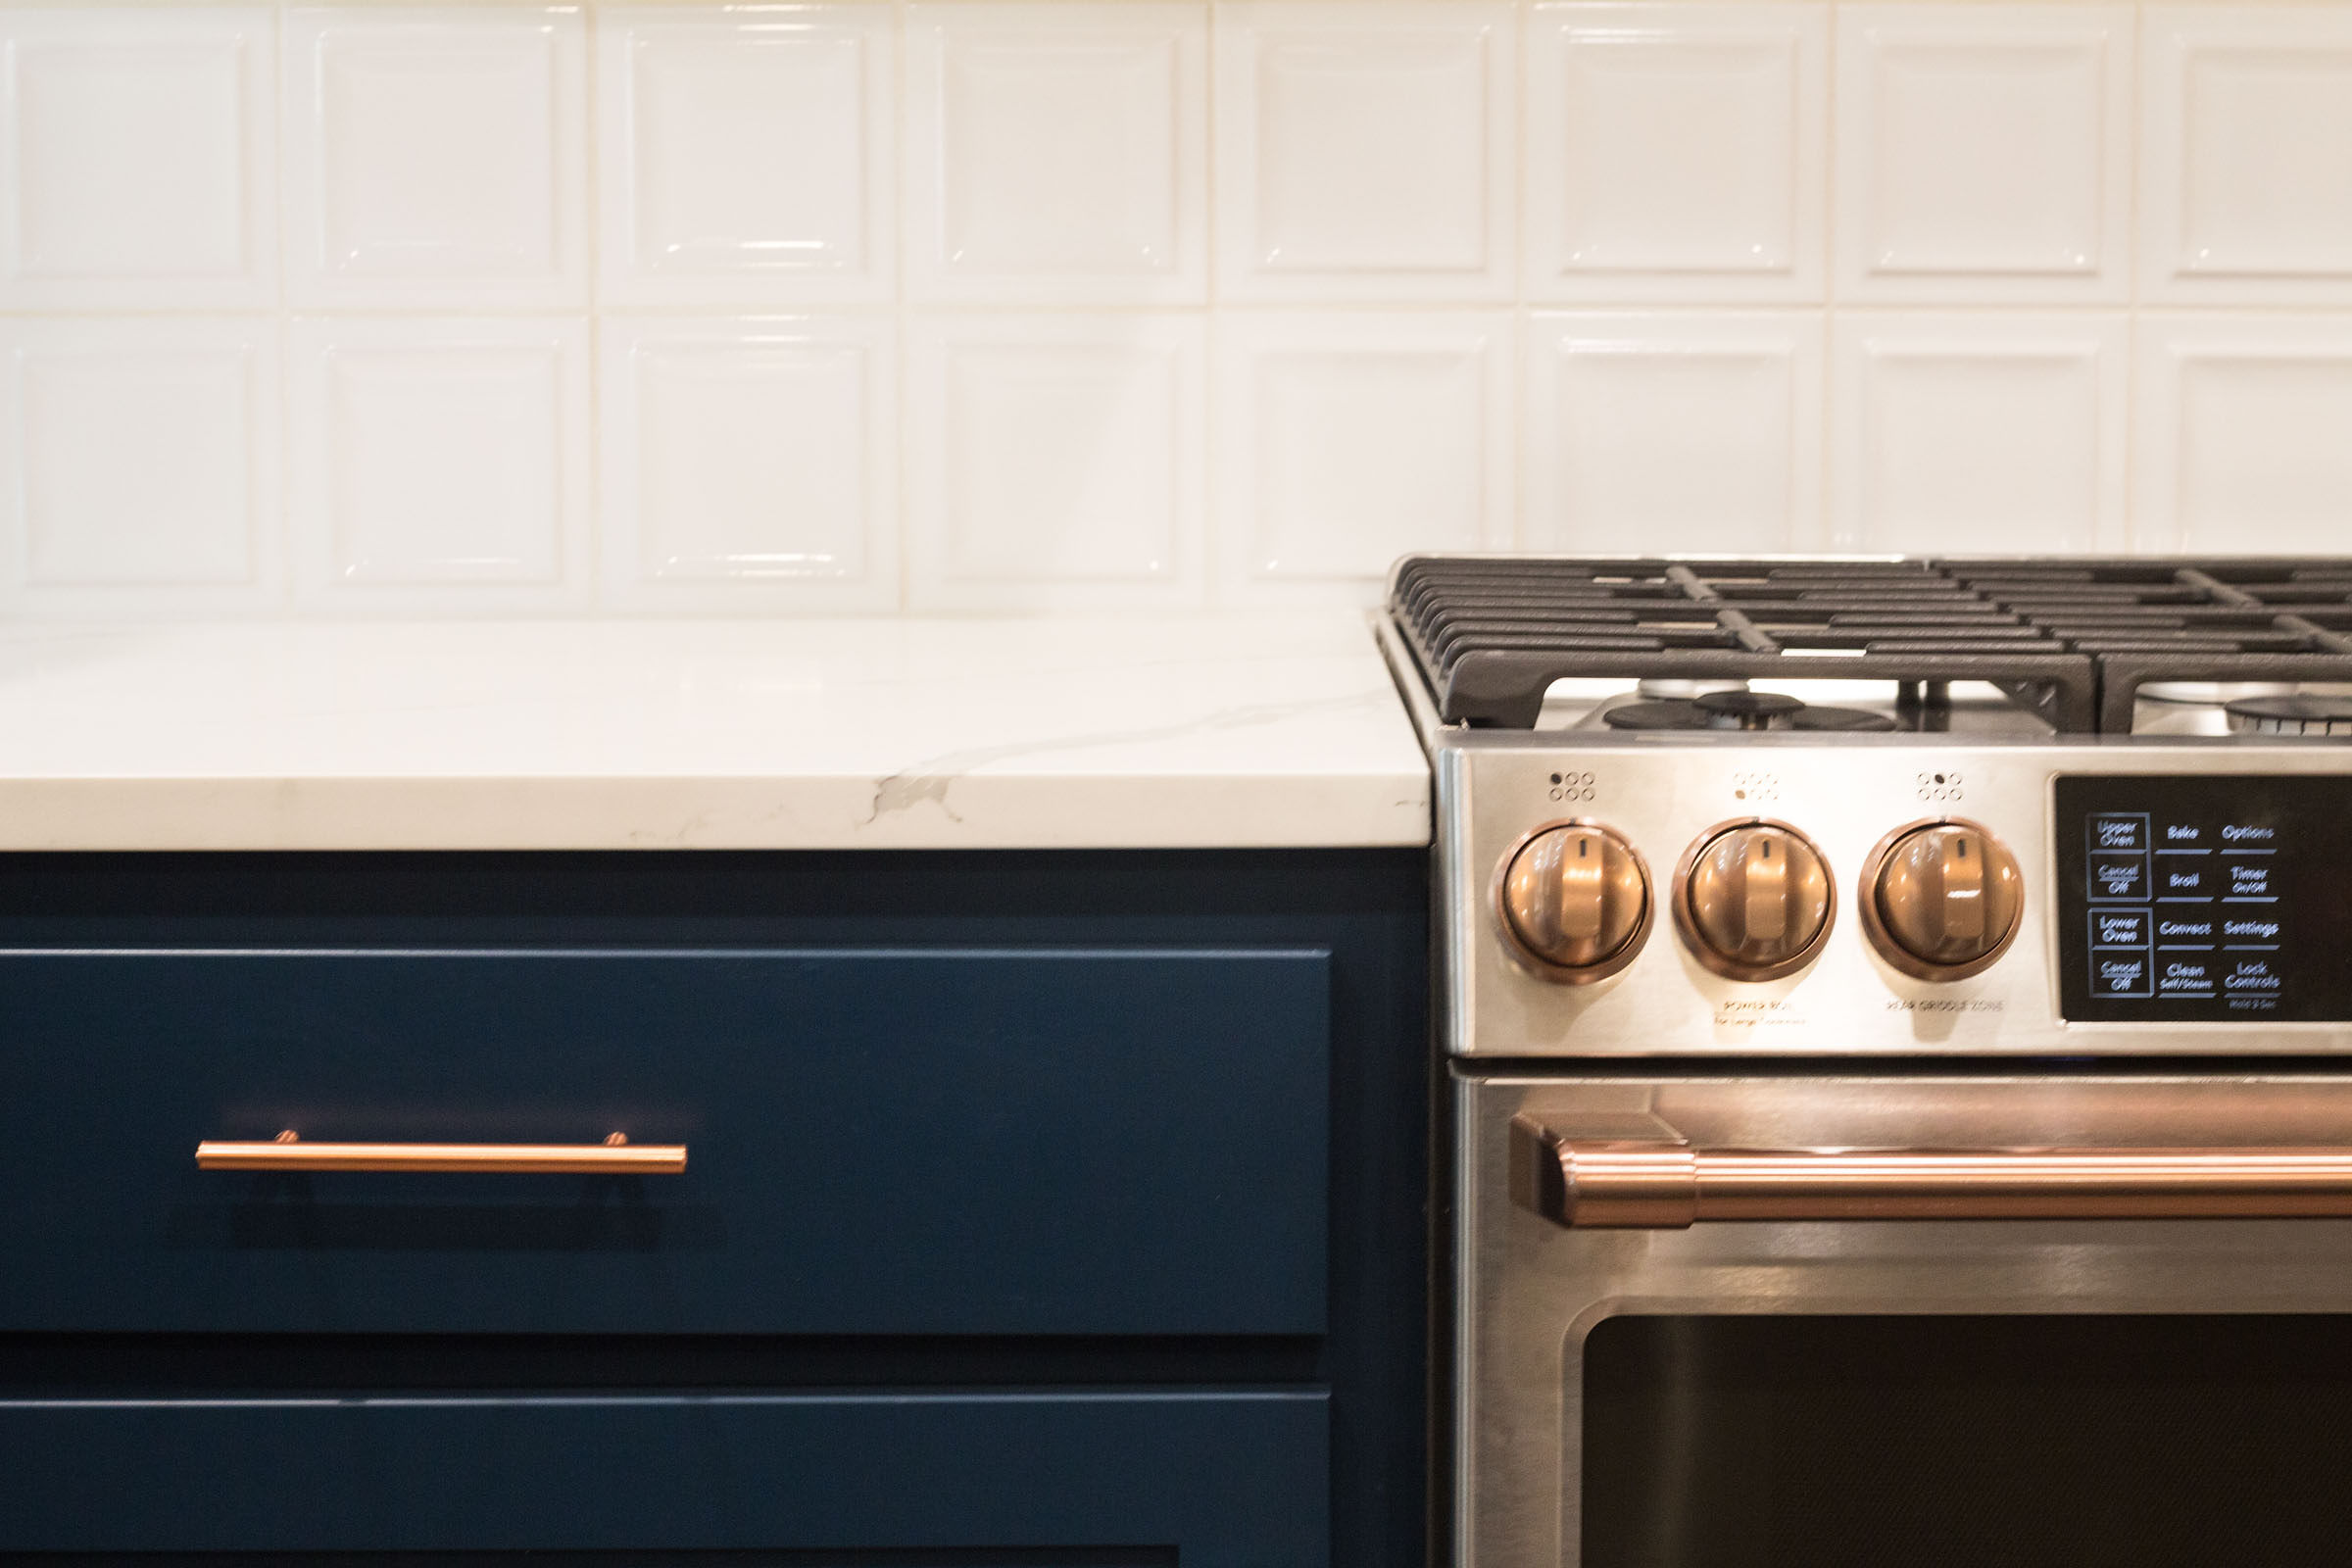 Navy drawers, stainless steel gas range, copper accents, kitchen remodel